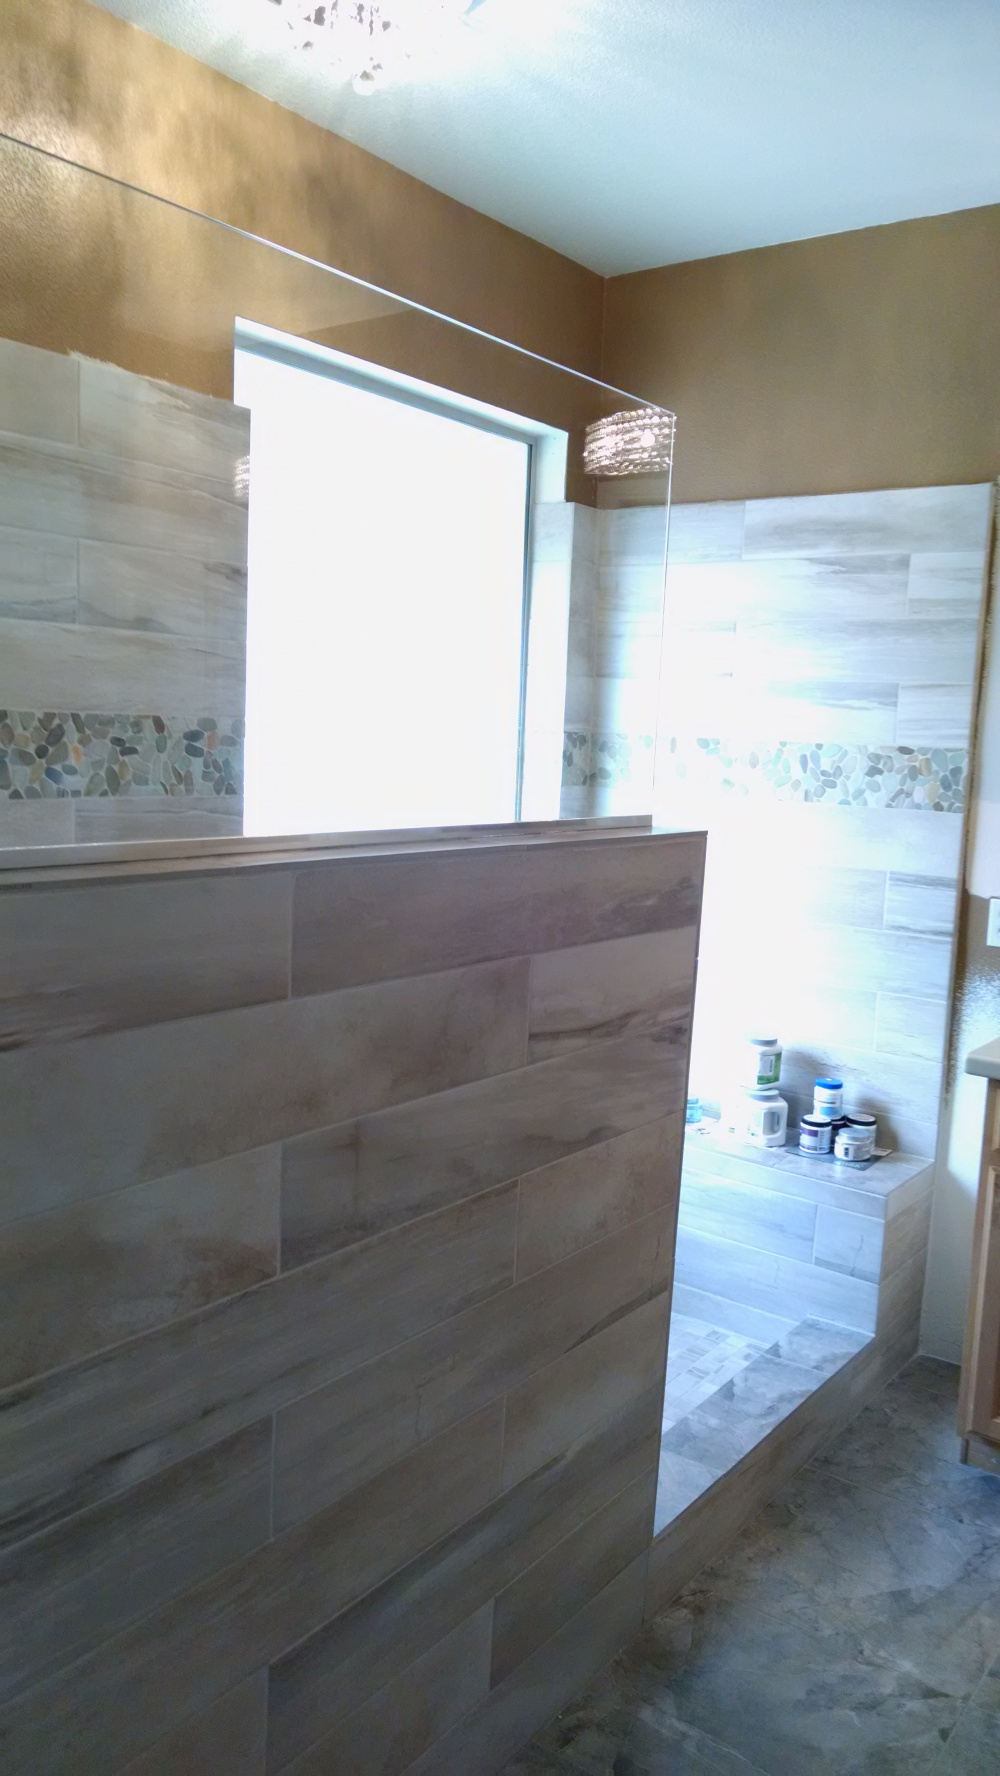 Phoenix Bathroom Remodel Enchanting Home Remodeling Phoenix  Champion Remodeling Llc. 2017